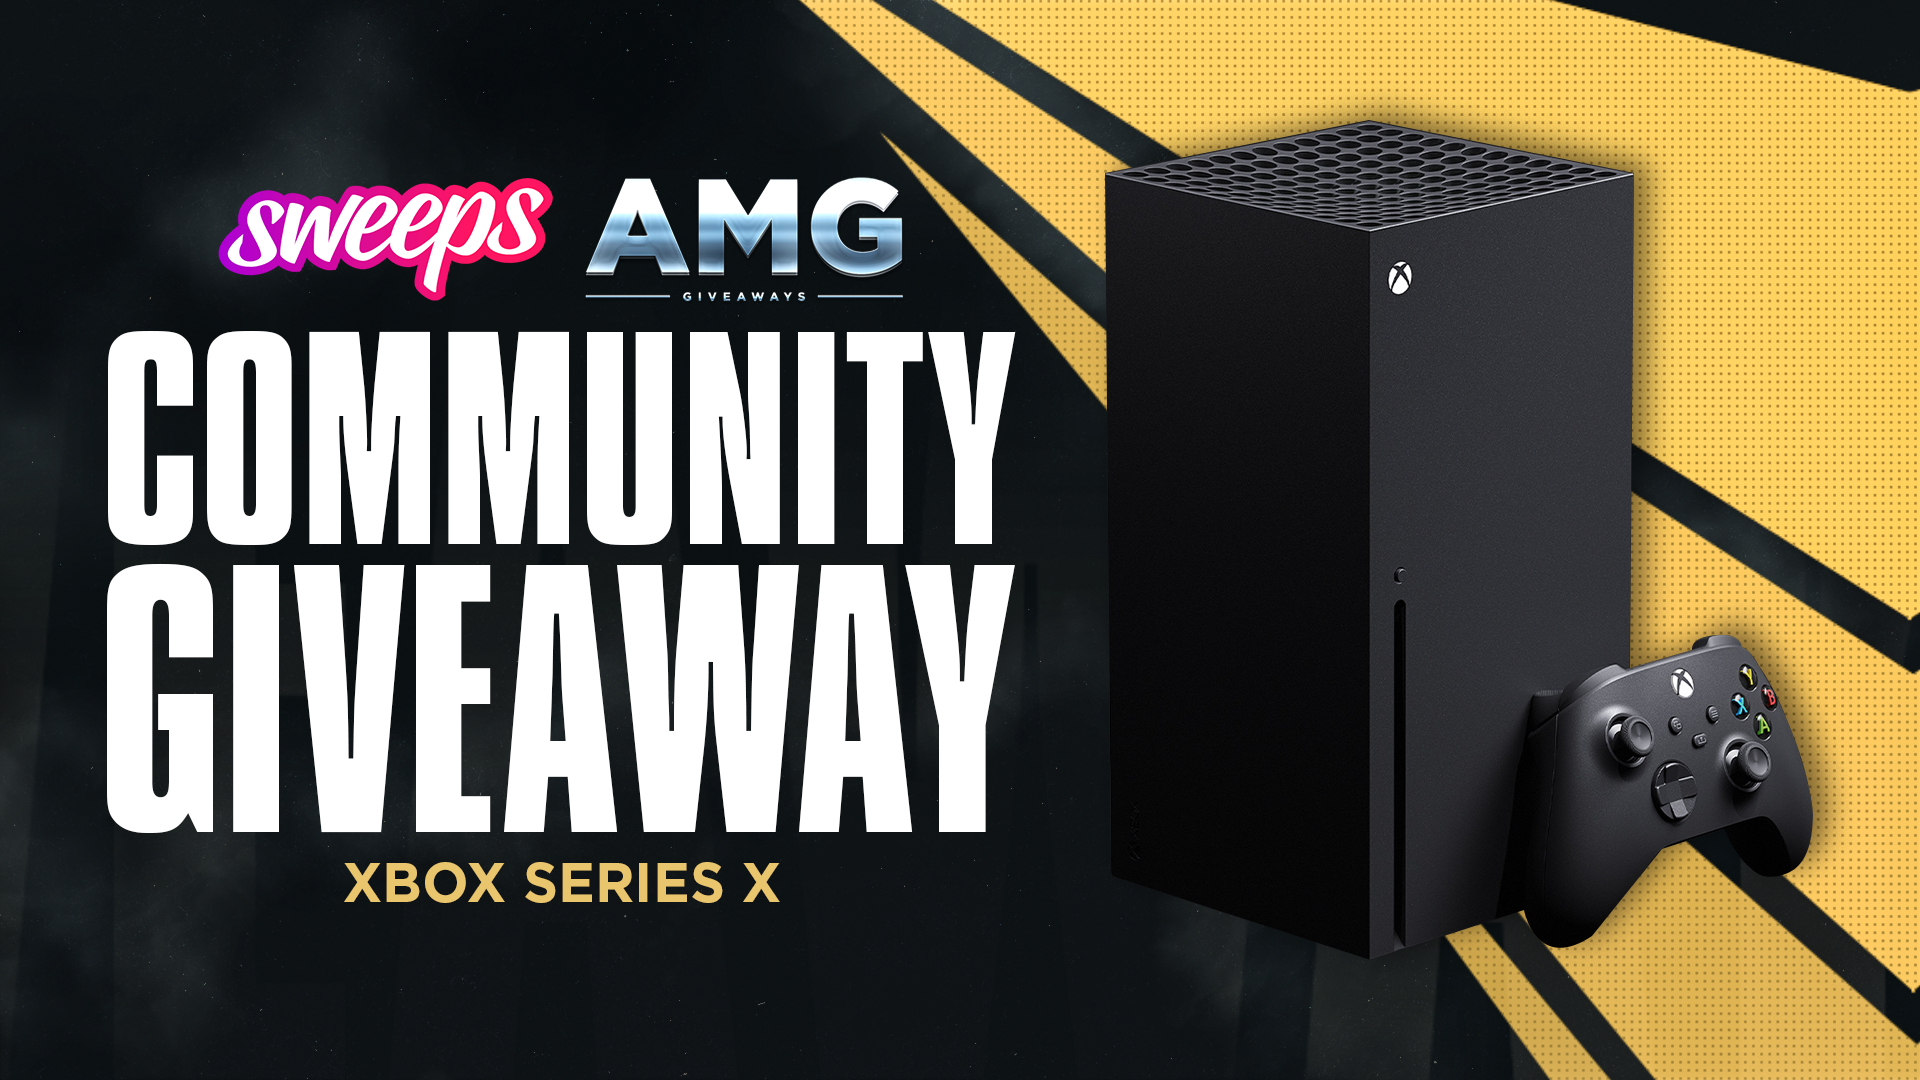 Sweeps X Amg Xbox Series X Giveaway In 2020 Gleam Giveaways Xbox Giveaway